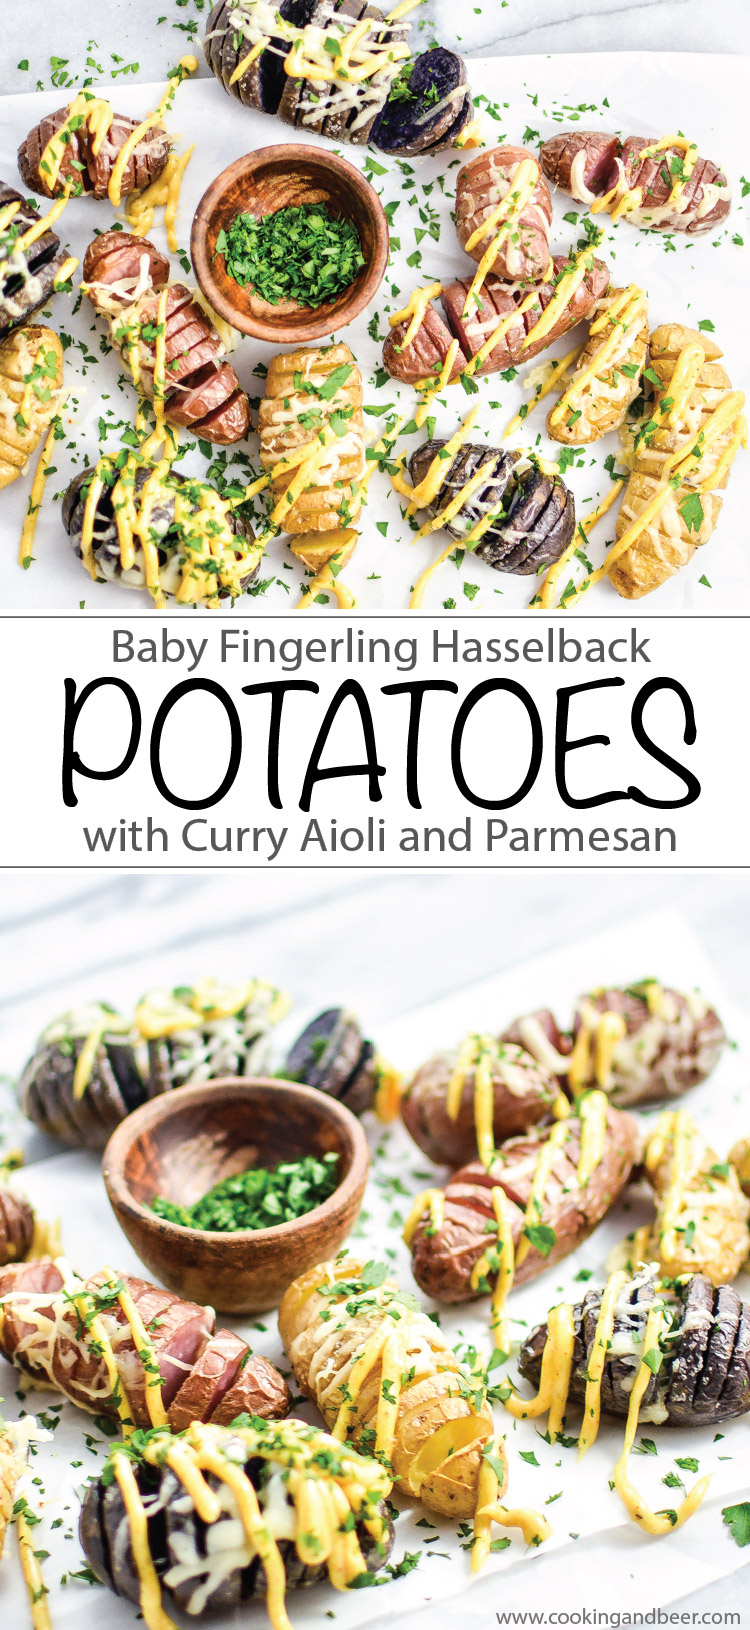 Baby Fingerling Hasselback Potatoes with Curry Aioli recipe is the perfect side dish or appetizer! | www.cookingandbeer.com